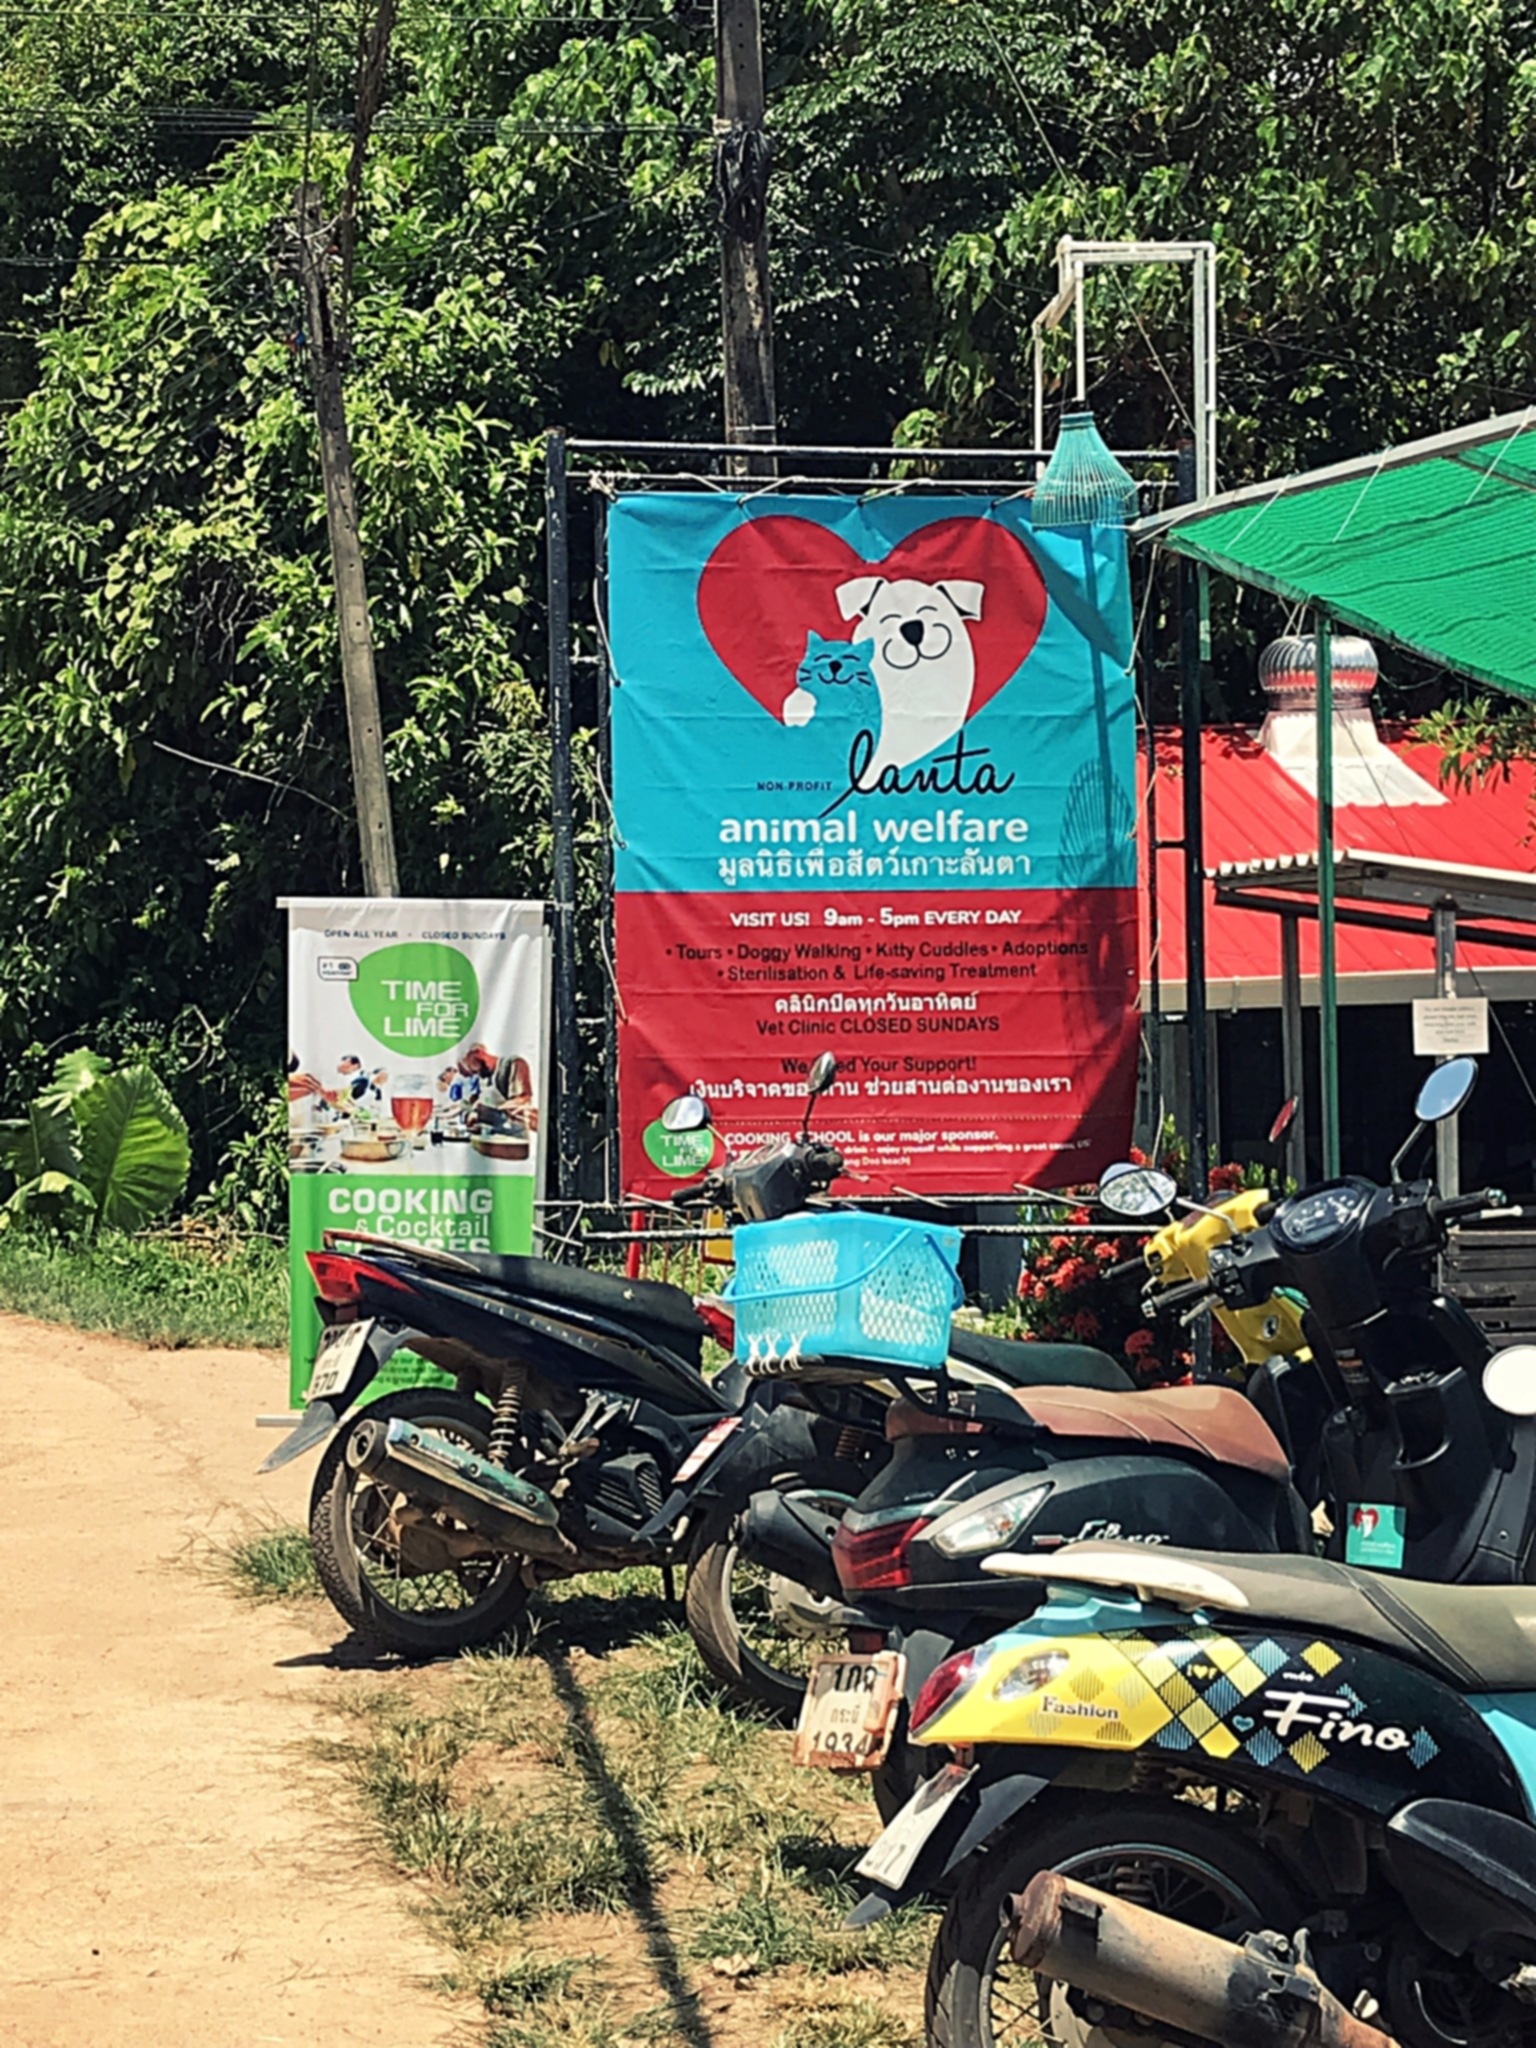 Lanta Animal Welfare, a nonprofit charity on Koh Lanta, Thailand